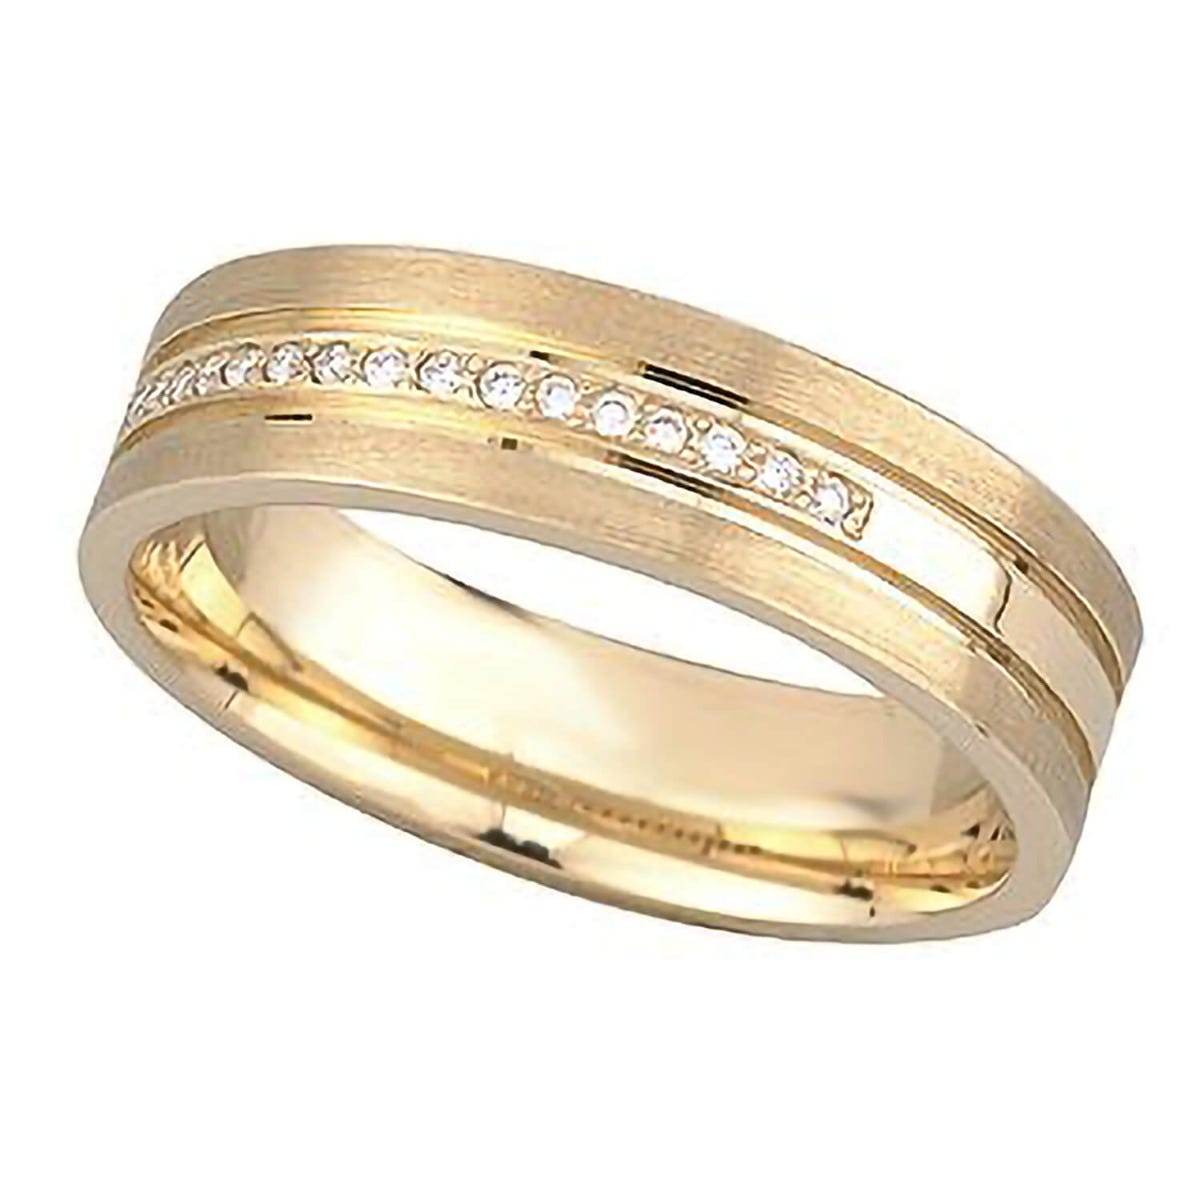 Men's 9ct gold diamond-set wedding ring